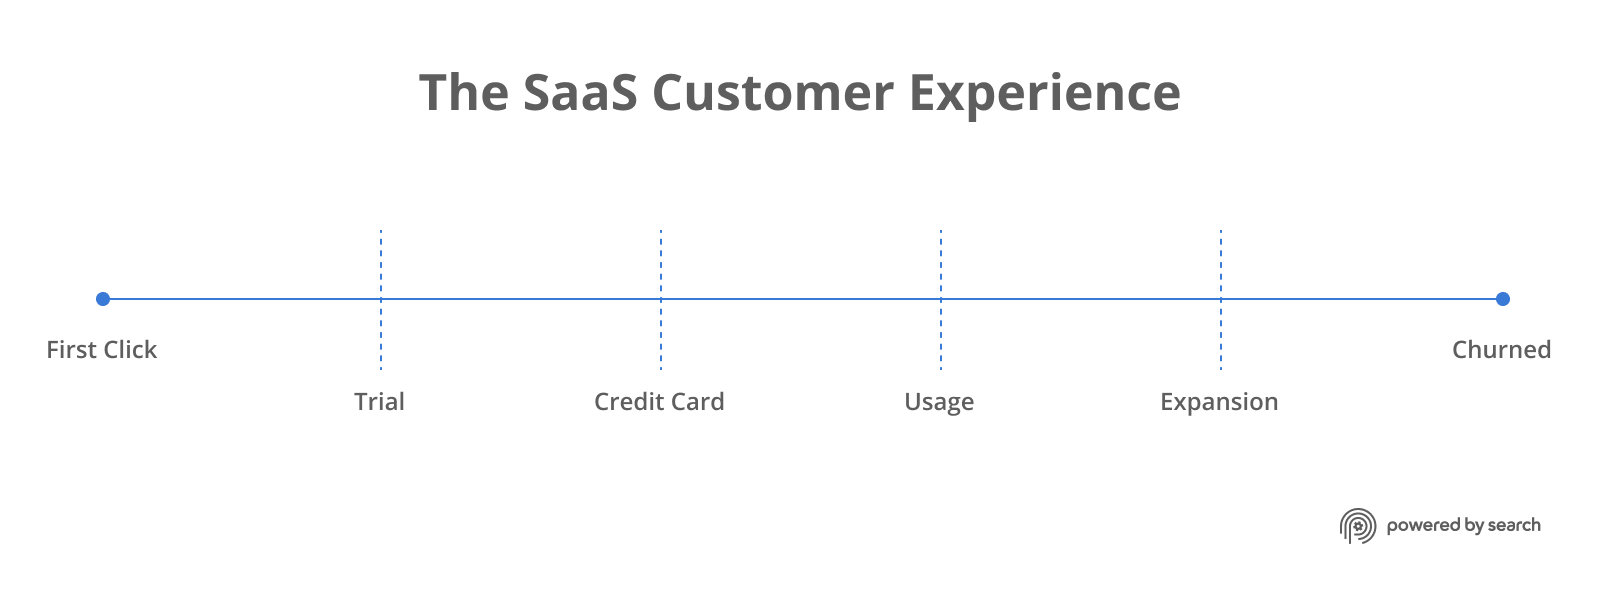 The SaaS Customer Experience: Good remarketing strategy for SaaS should utilize the entire SaaS customer experience.